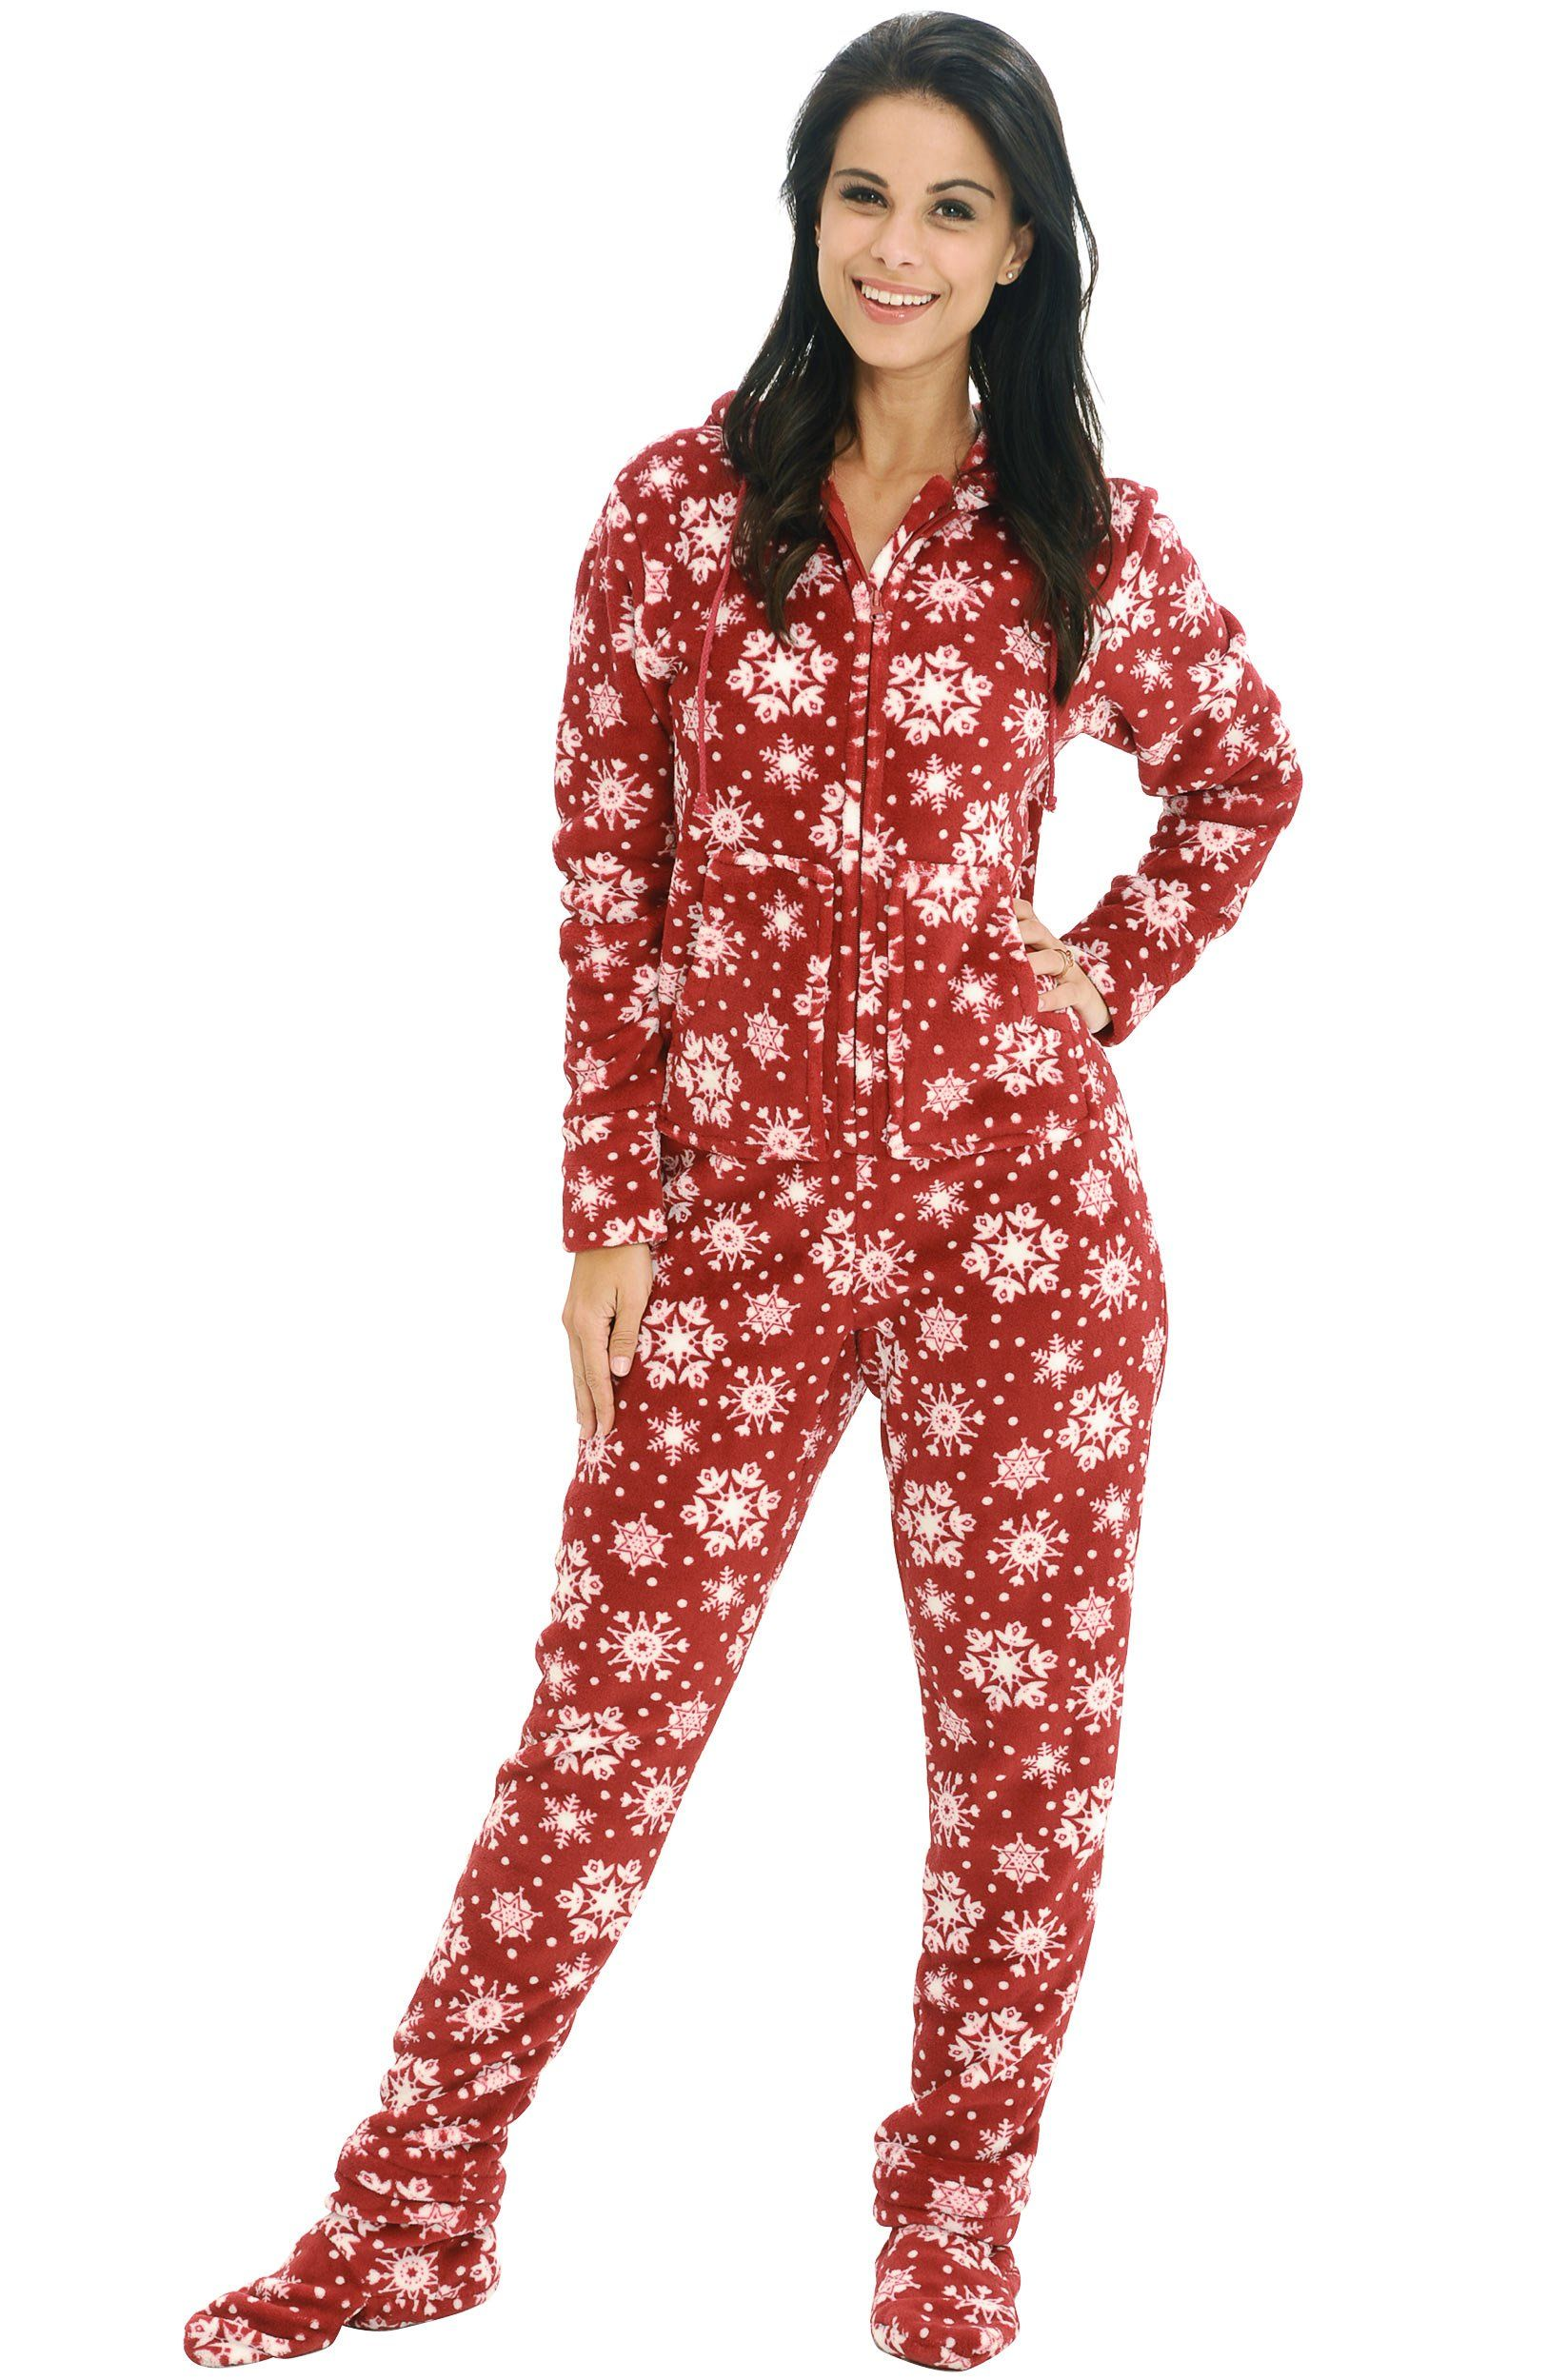 Del Rossa Women's Fleece Hooded Footed One Piece Onesie